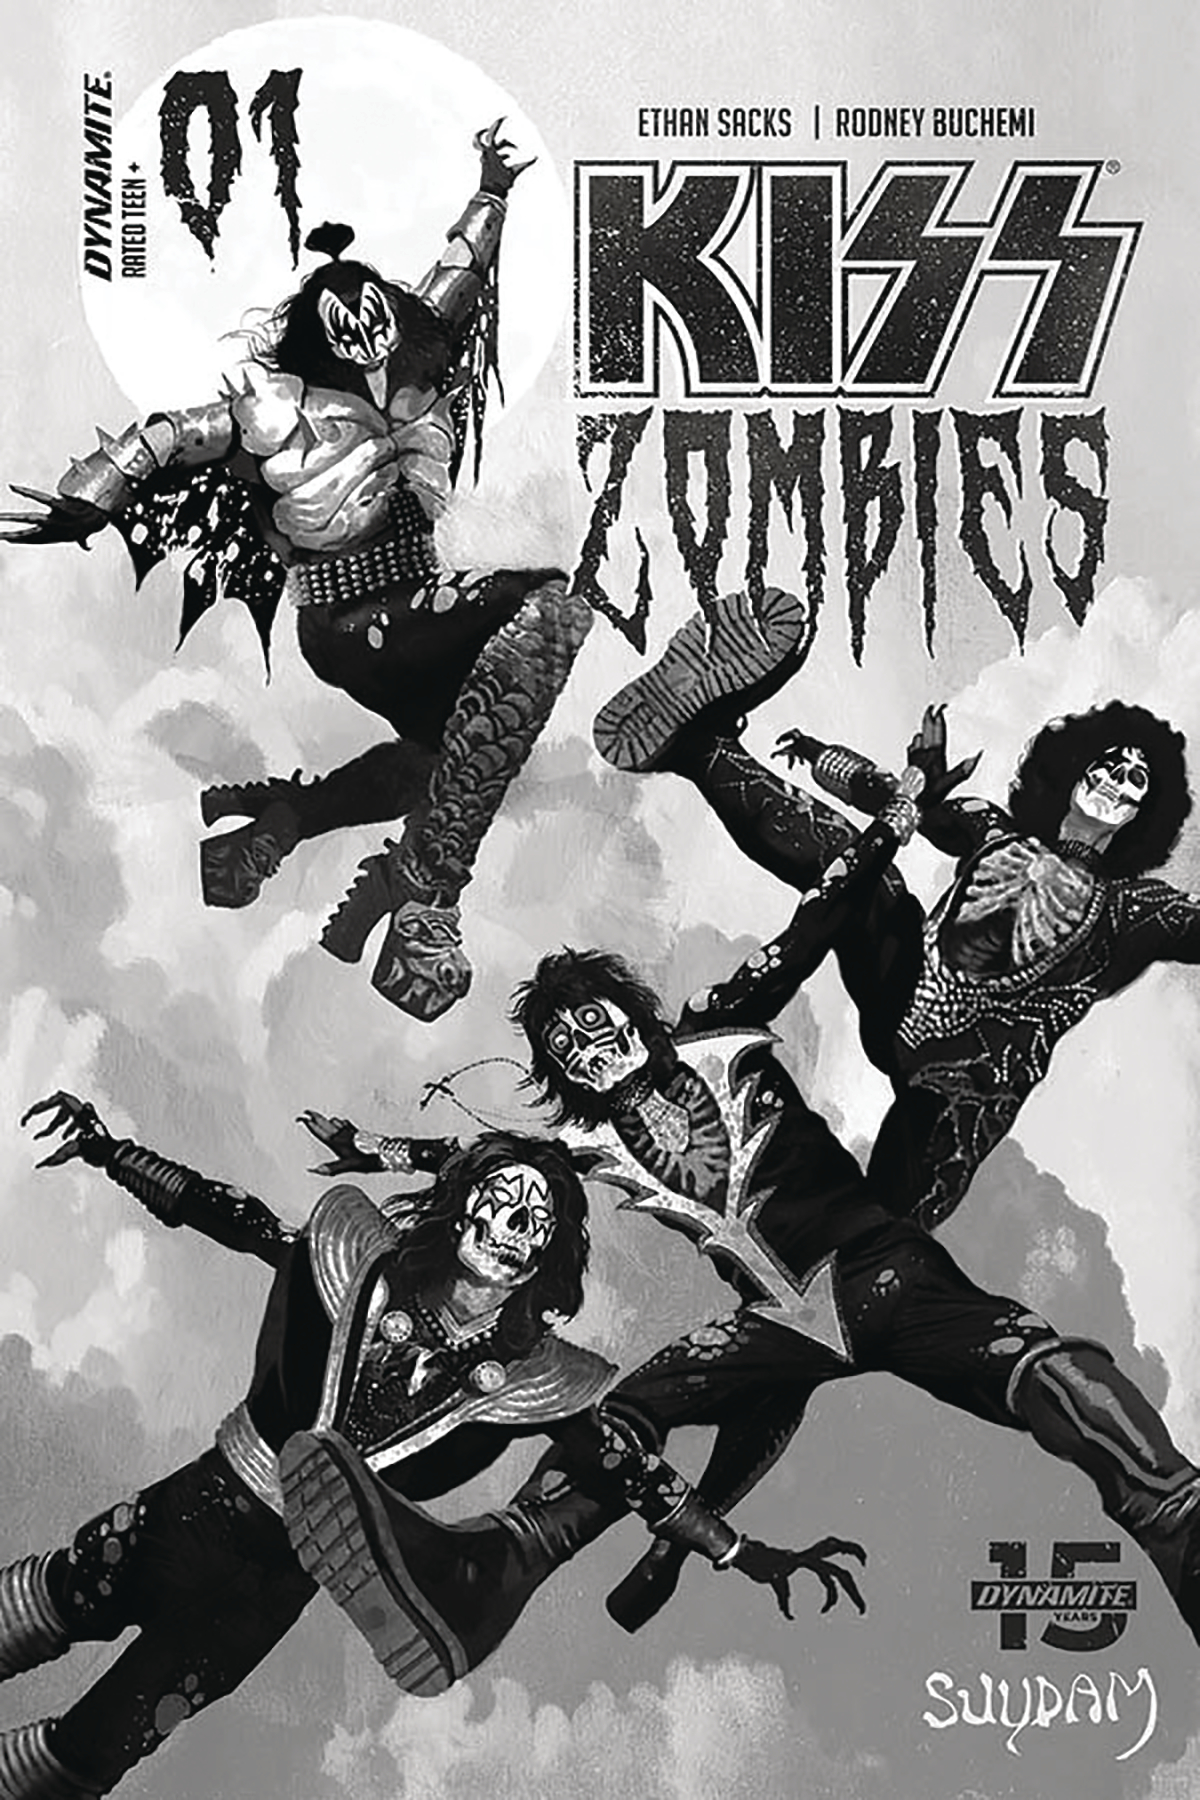 KISS ZOMBIES #1 SUYDAM LTD GRAYSCALE CVR